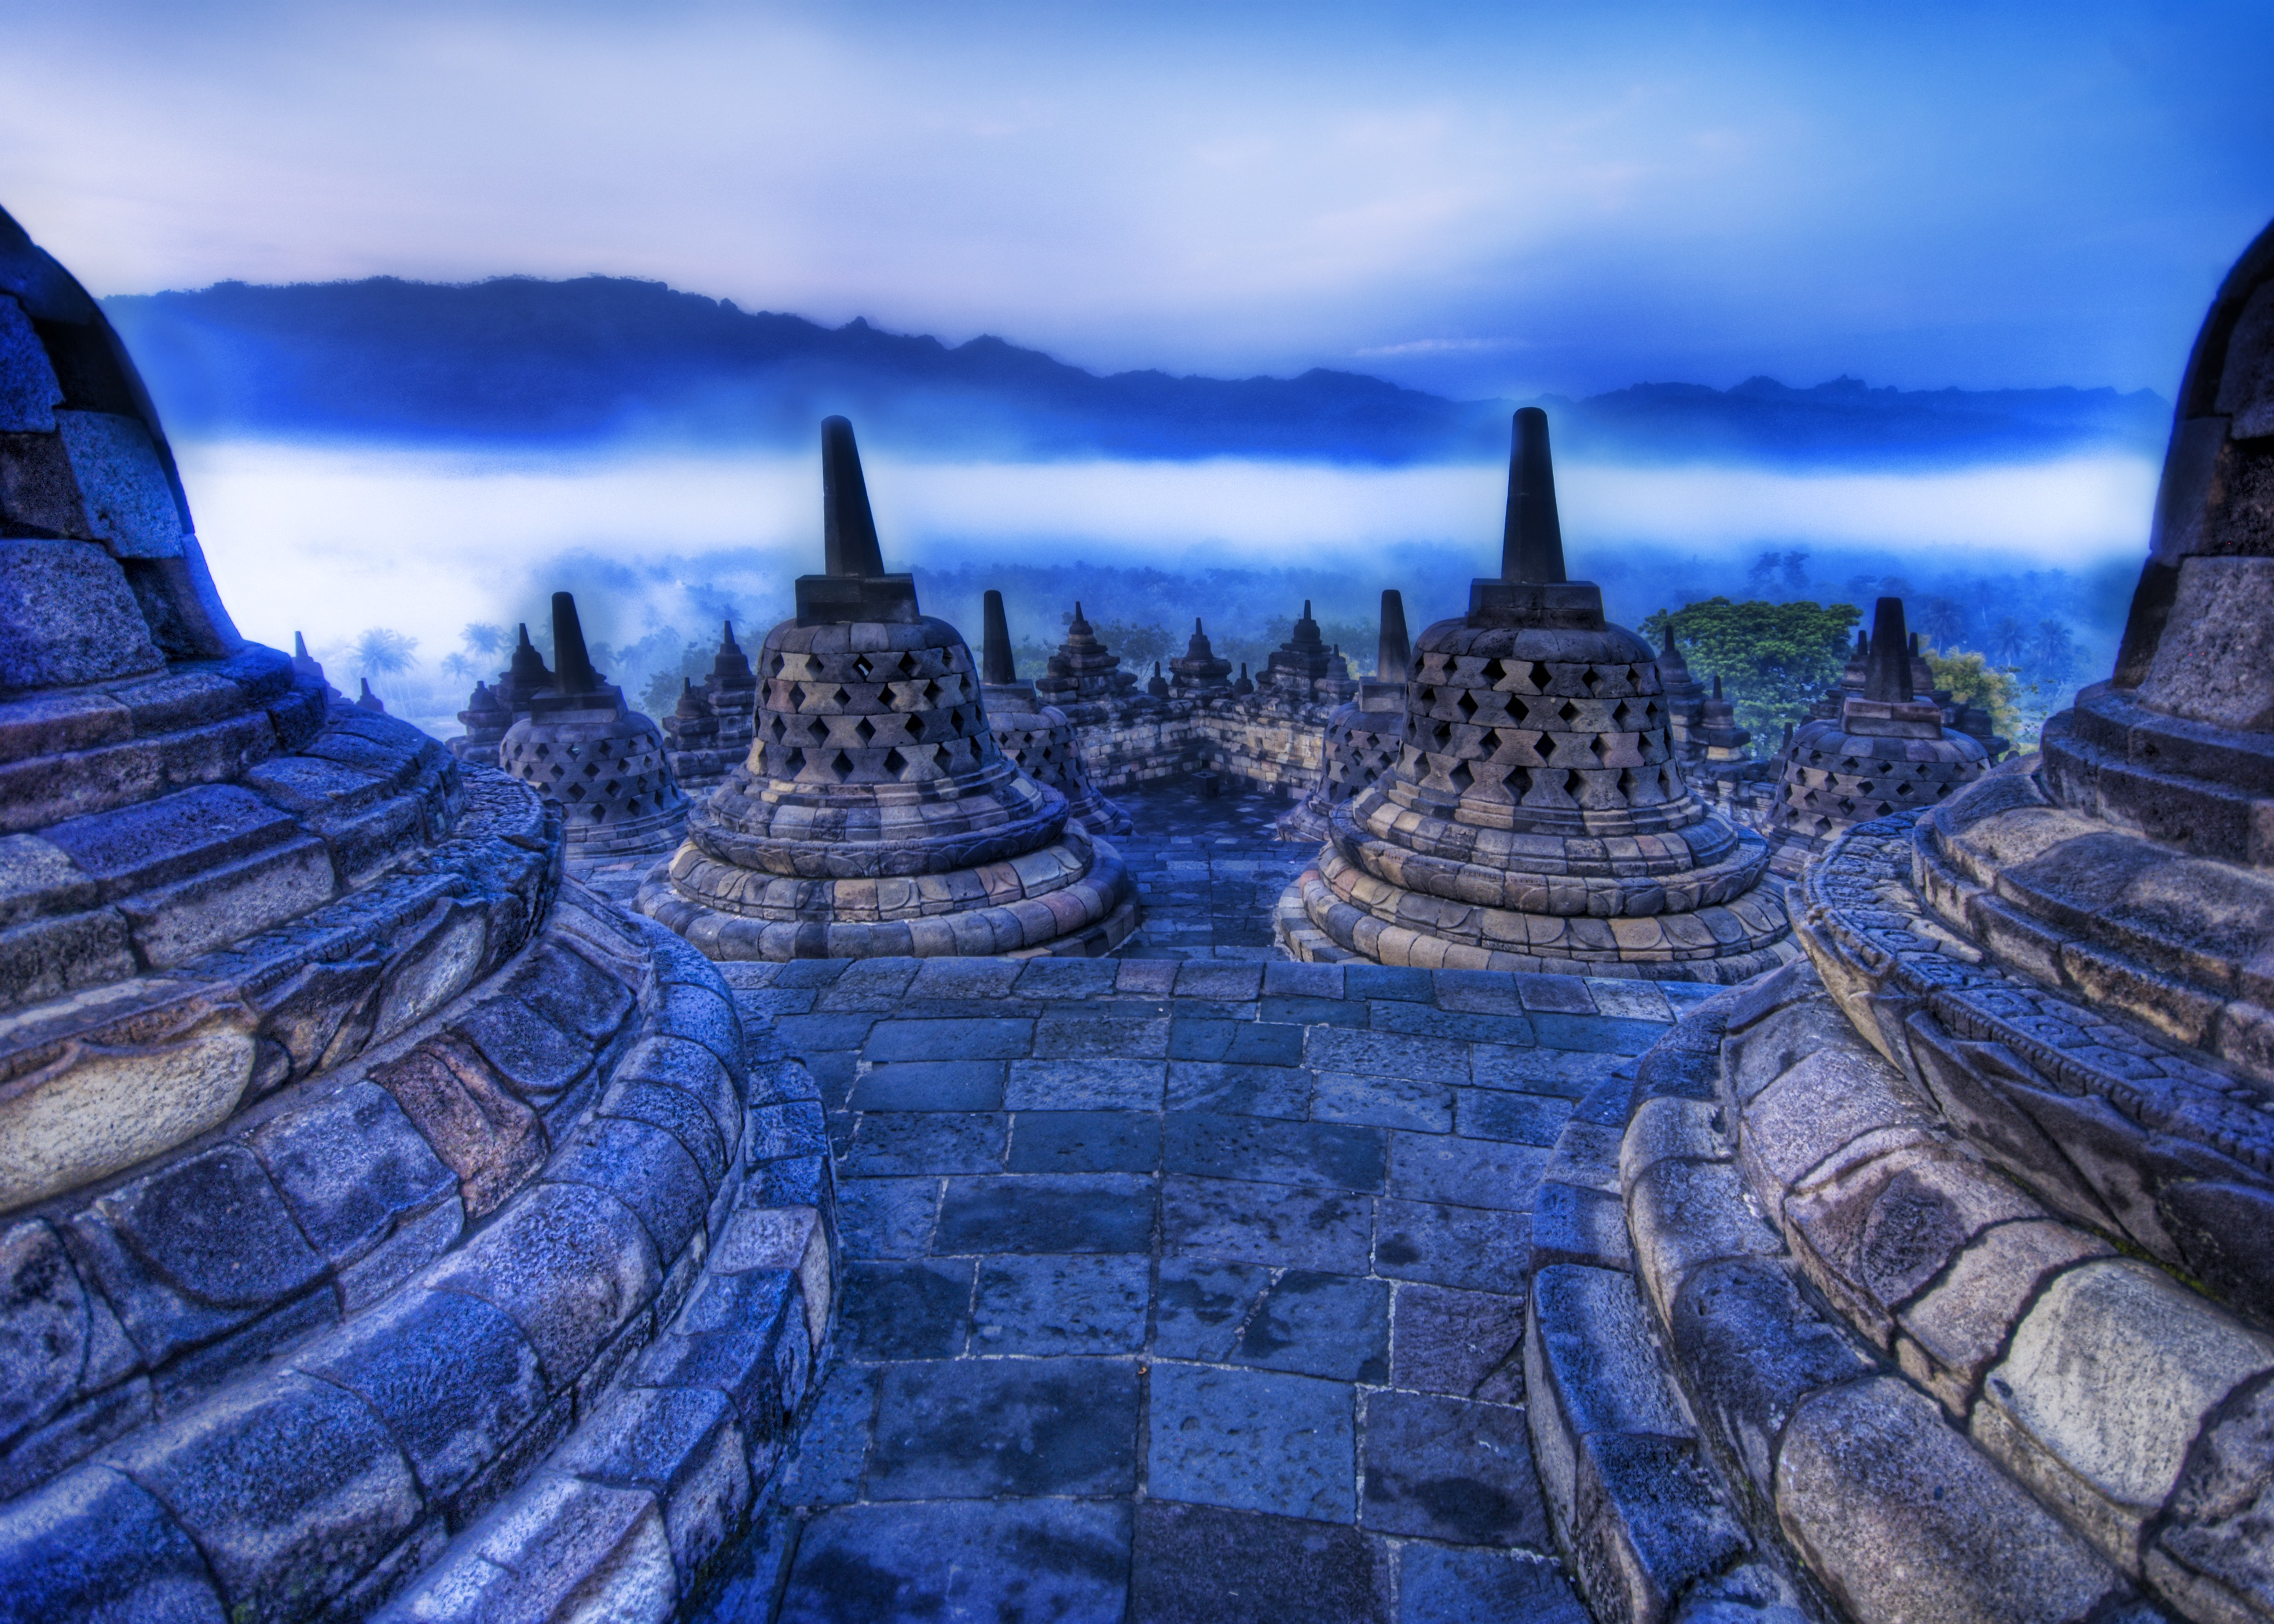 Sikh Wallpapers Hd For Iphone 5 Borobudur 4k Ultra Hd Wallpaper Background Image